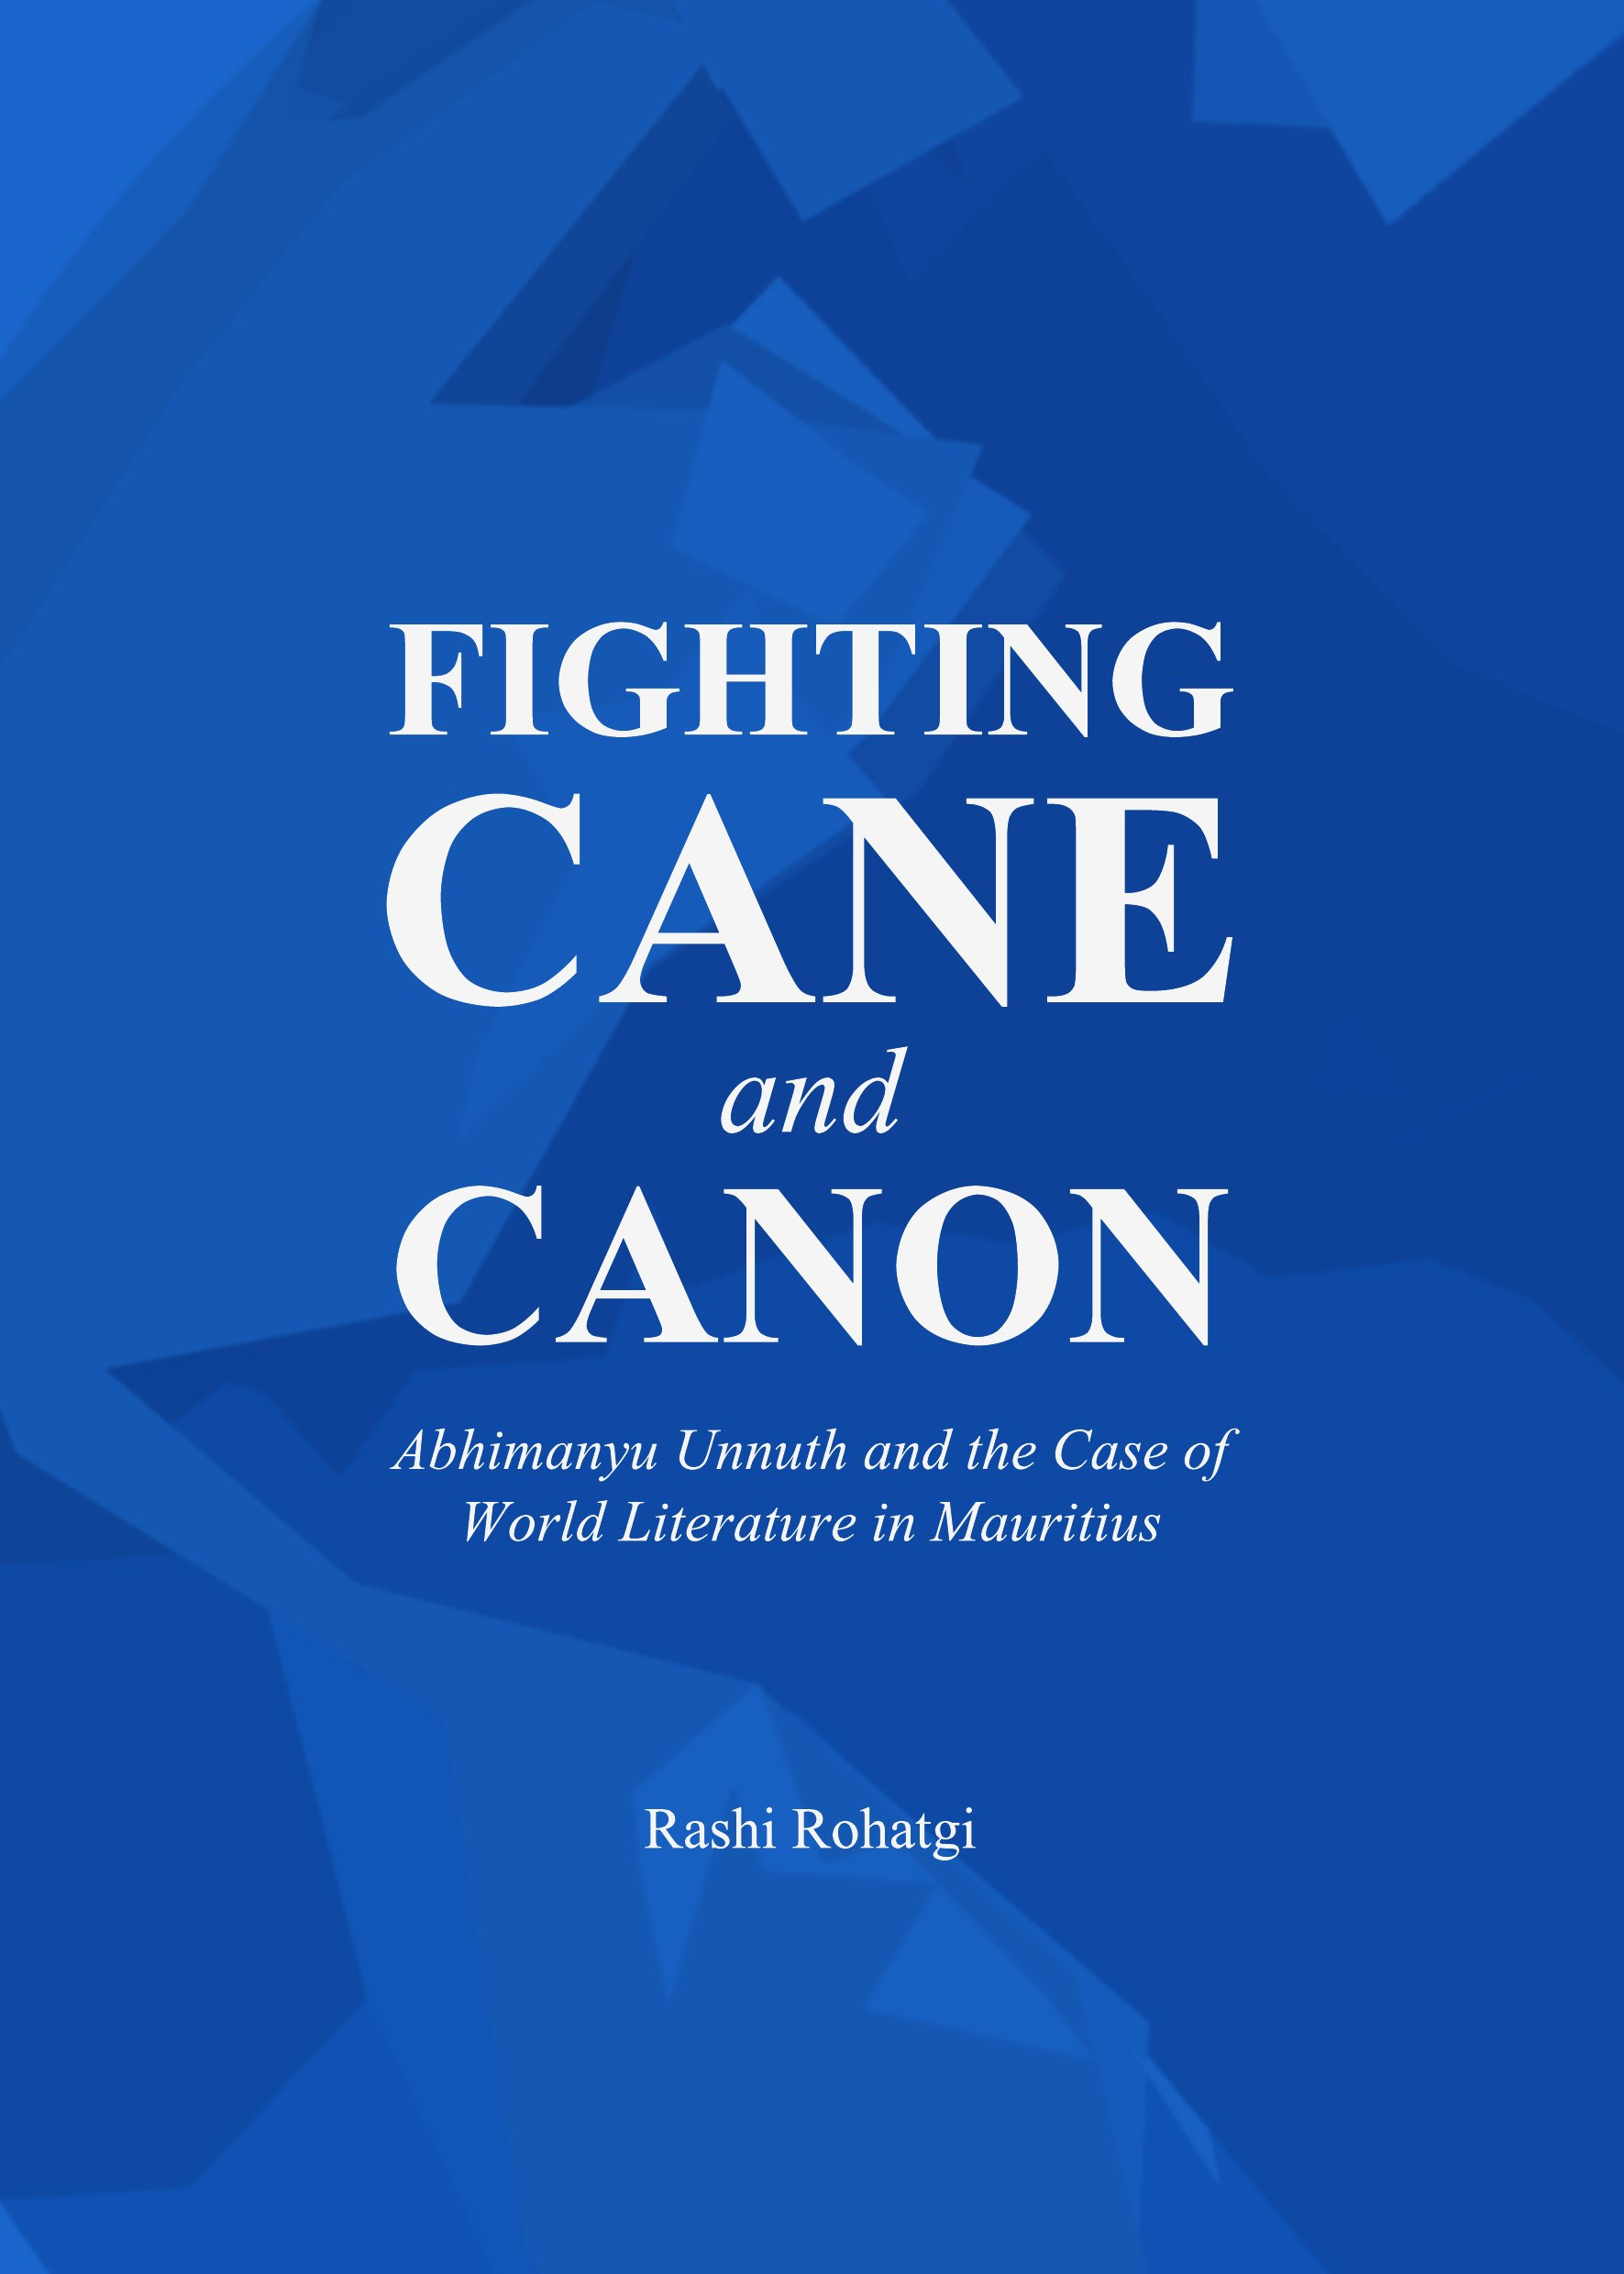 Fighting Cane and Canon: Abhimanyu Unnuth and the Case of World Literature in Mauritius